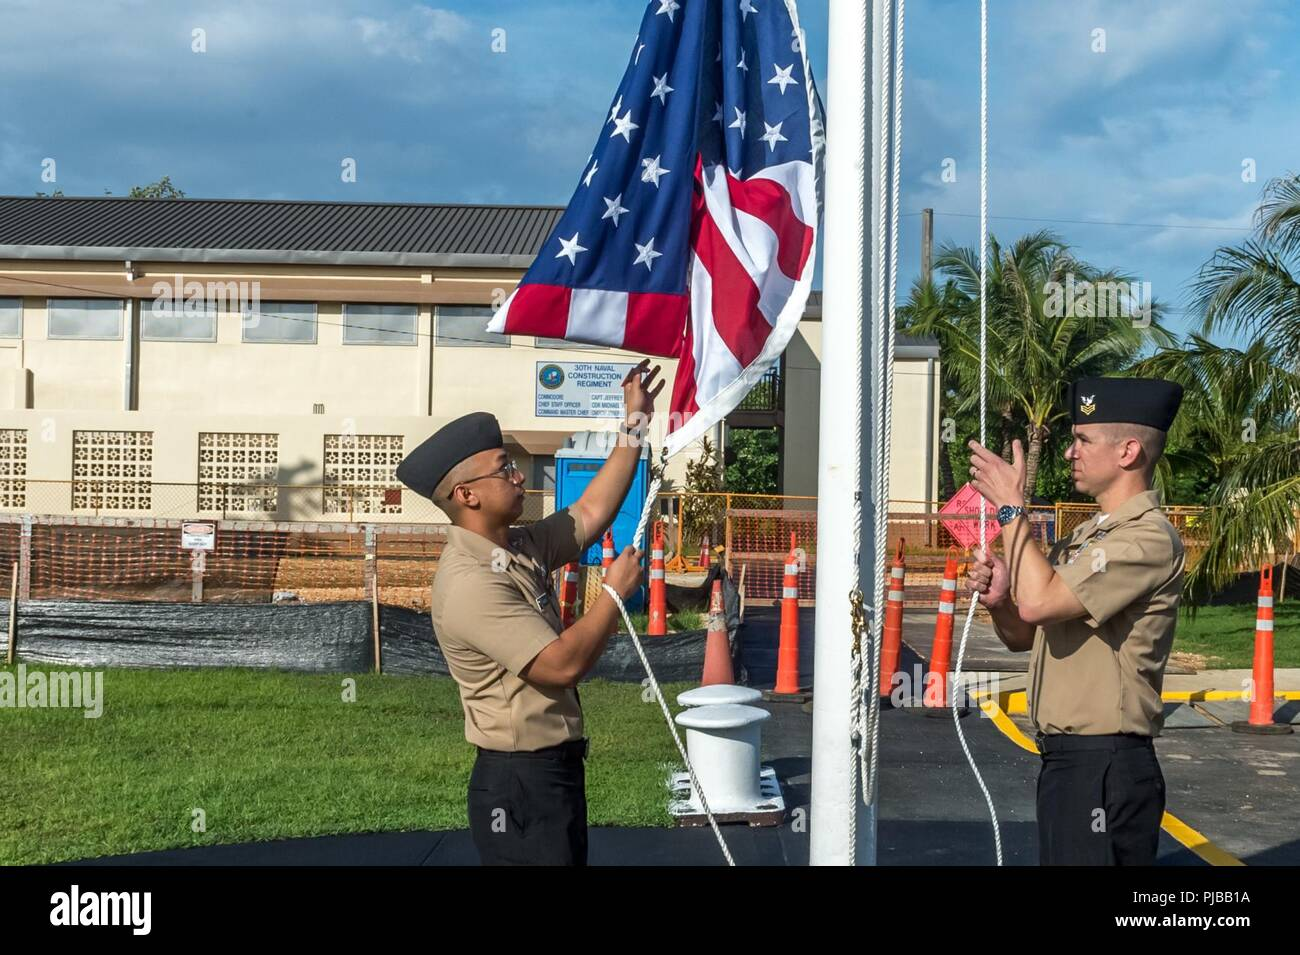 SANTA RITA, Guam (July 1, 2018) Yeoman 1st Class Travis Aquino, left, and Equipment Operator 1st Class Clinton Burch raise the American flag over the 30th Naval Construction Regiment (NCR) headquarters, officially marking its relocation to Guam from Port Hueneme, California. This move streamlines operational effectiveness and establishes the regiment as a forward-deployed operational staff capable of commanding and controlling Naval Construction Force units deployed to the 7th Fleet area of operations. Stock Photo